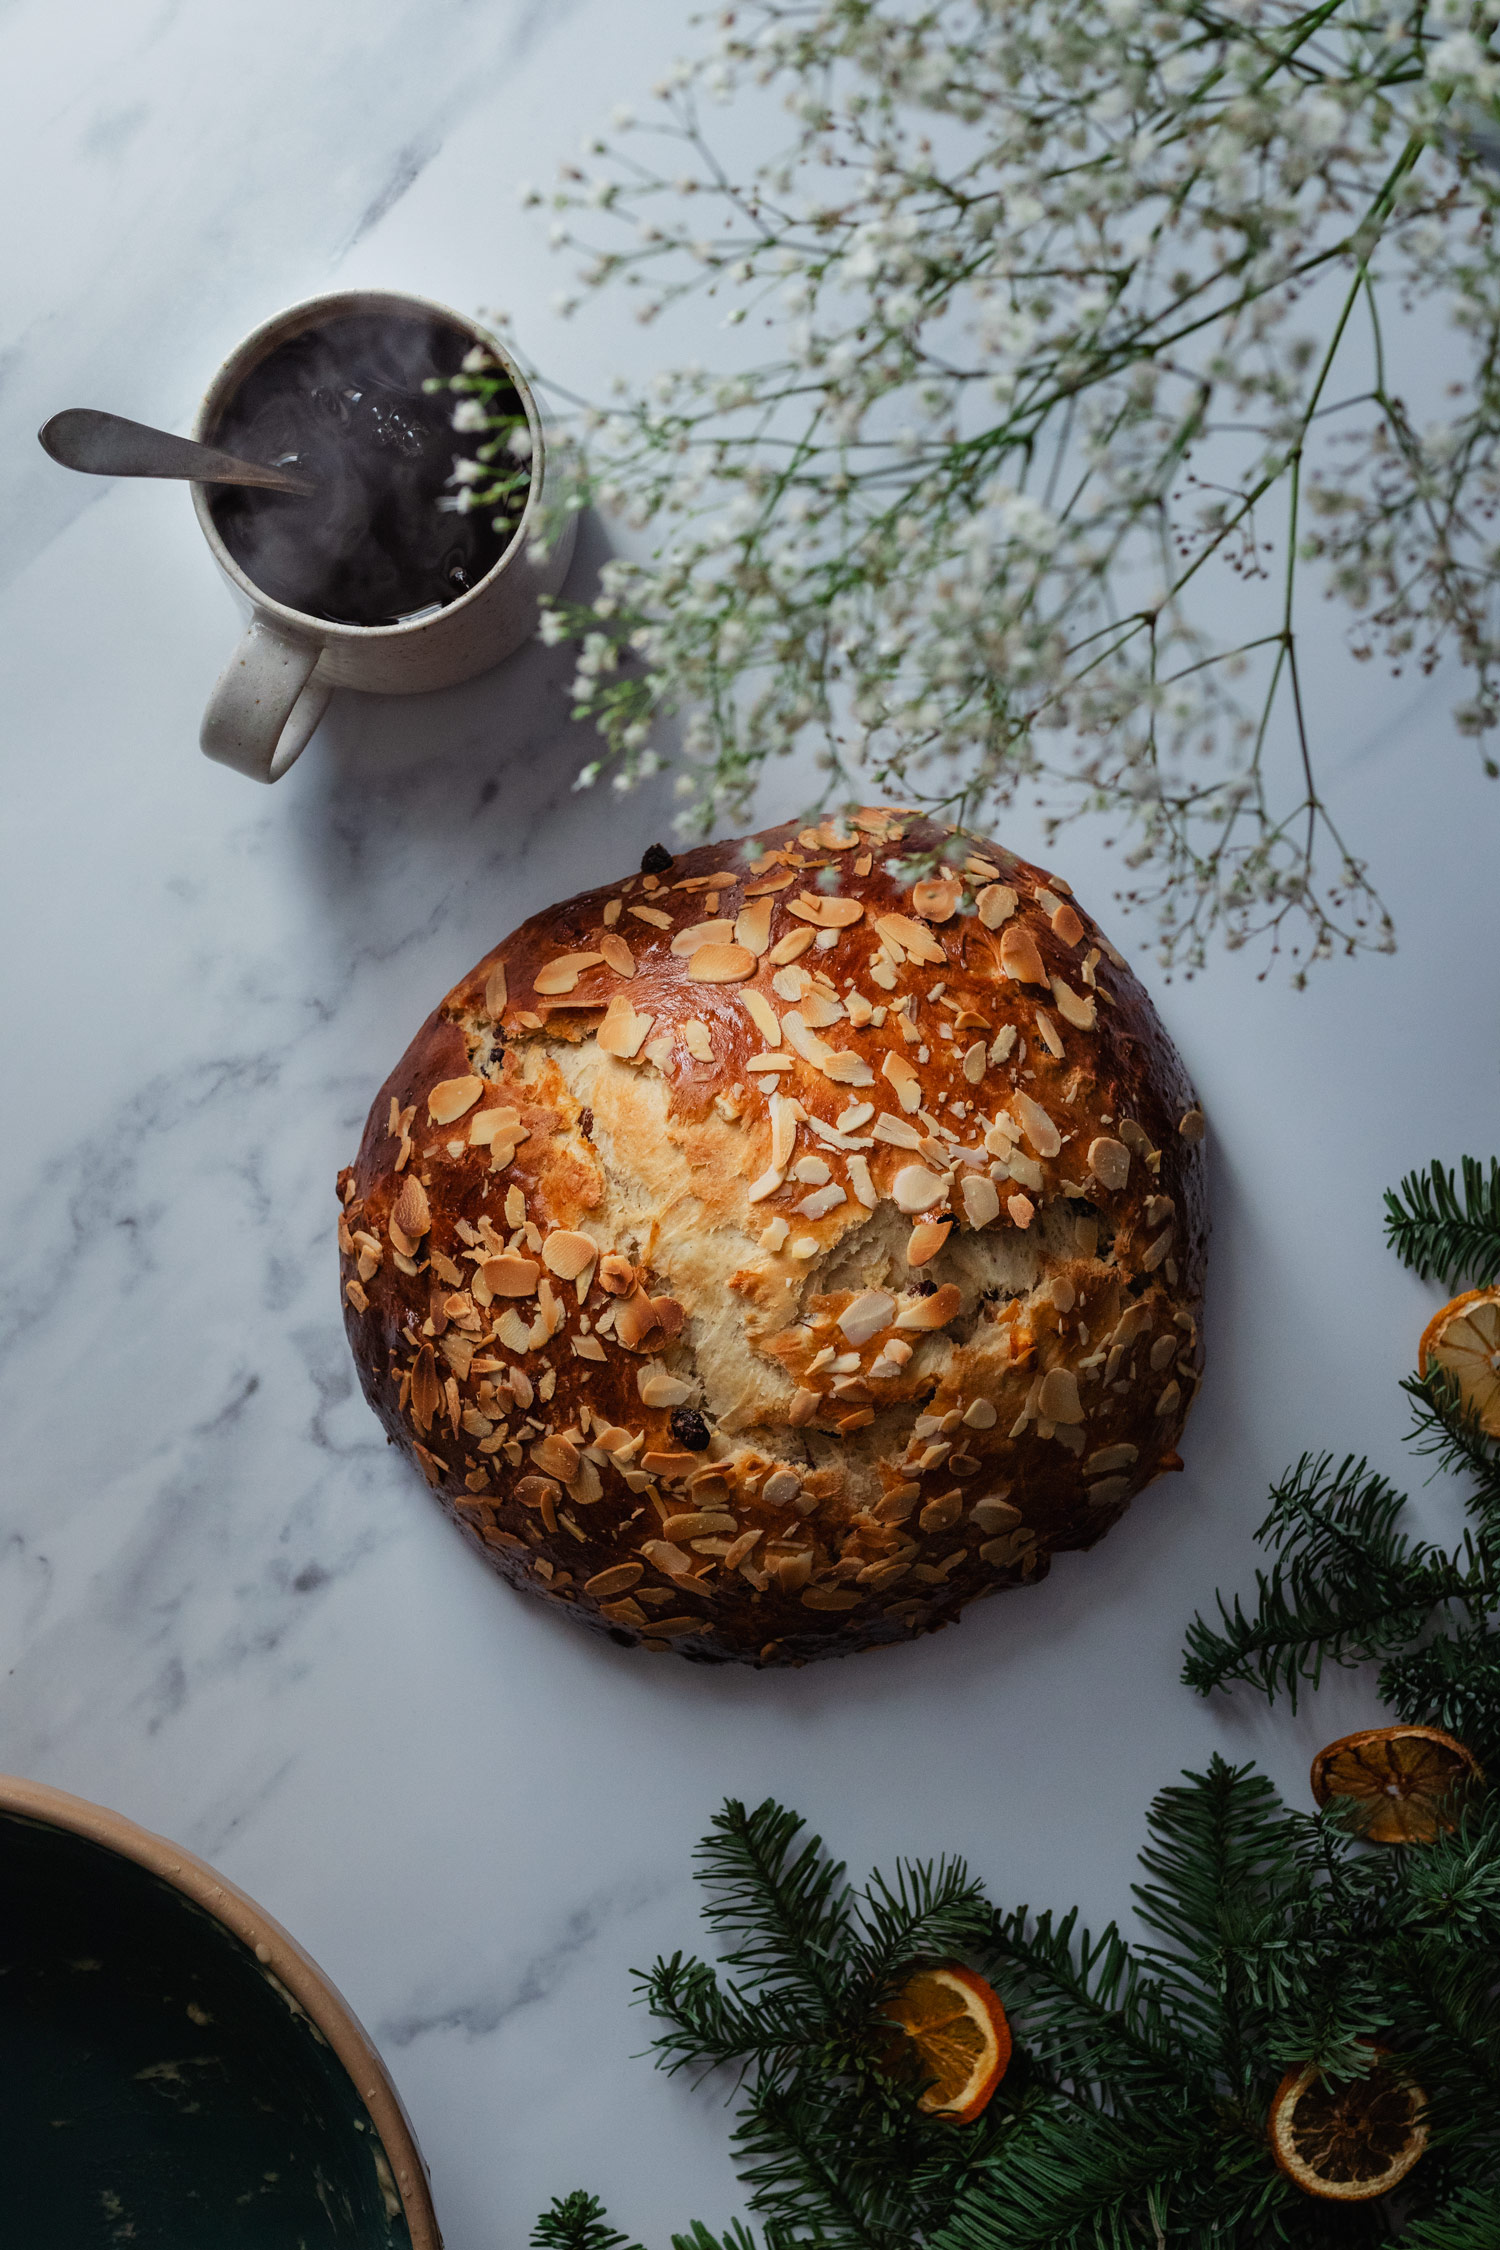 julekage norwegian christmas bread